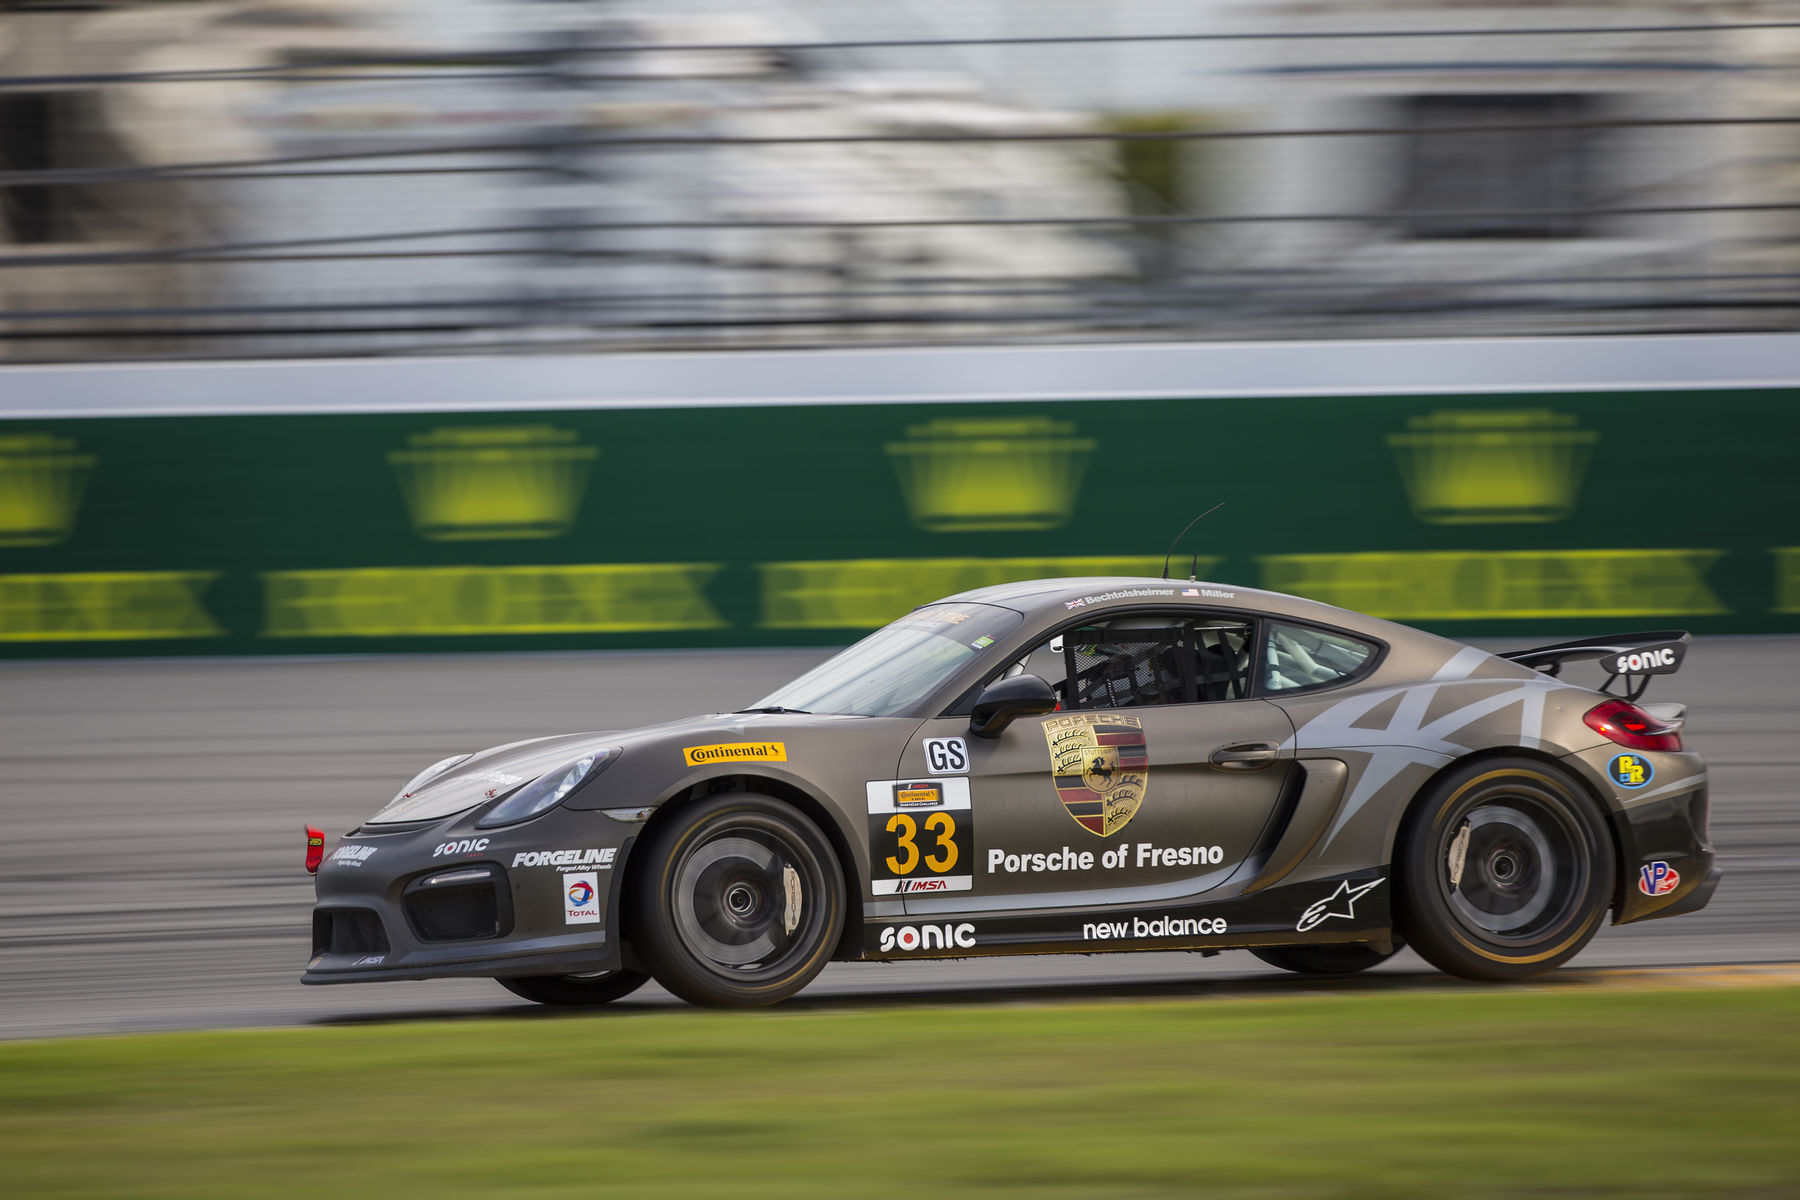 2017 Porsche Cayman | Forgeline-Equipped Porsche Caymans Dominate IMSA CTSC 2017 Season Opener at Daytona